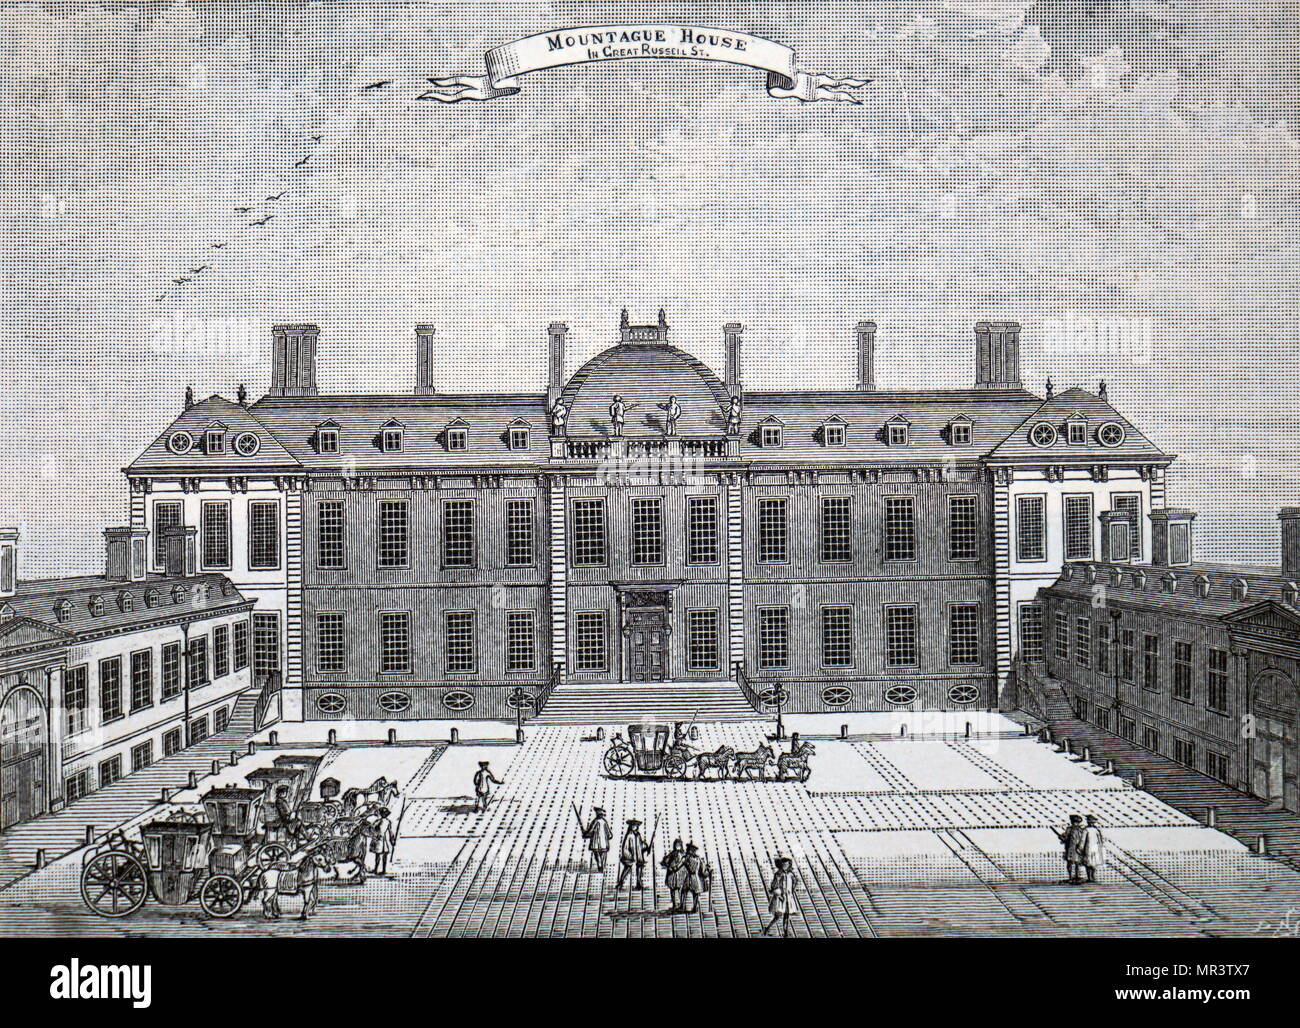 Illustration depicting the exterior of Montagu House, Bloomsbury, the first home of the British Museum. Dated 19th century - Stock Image